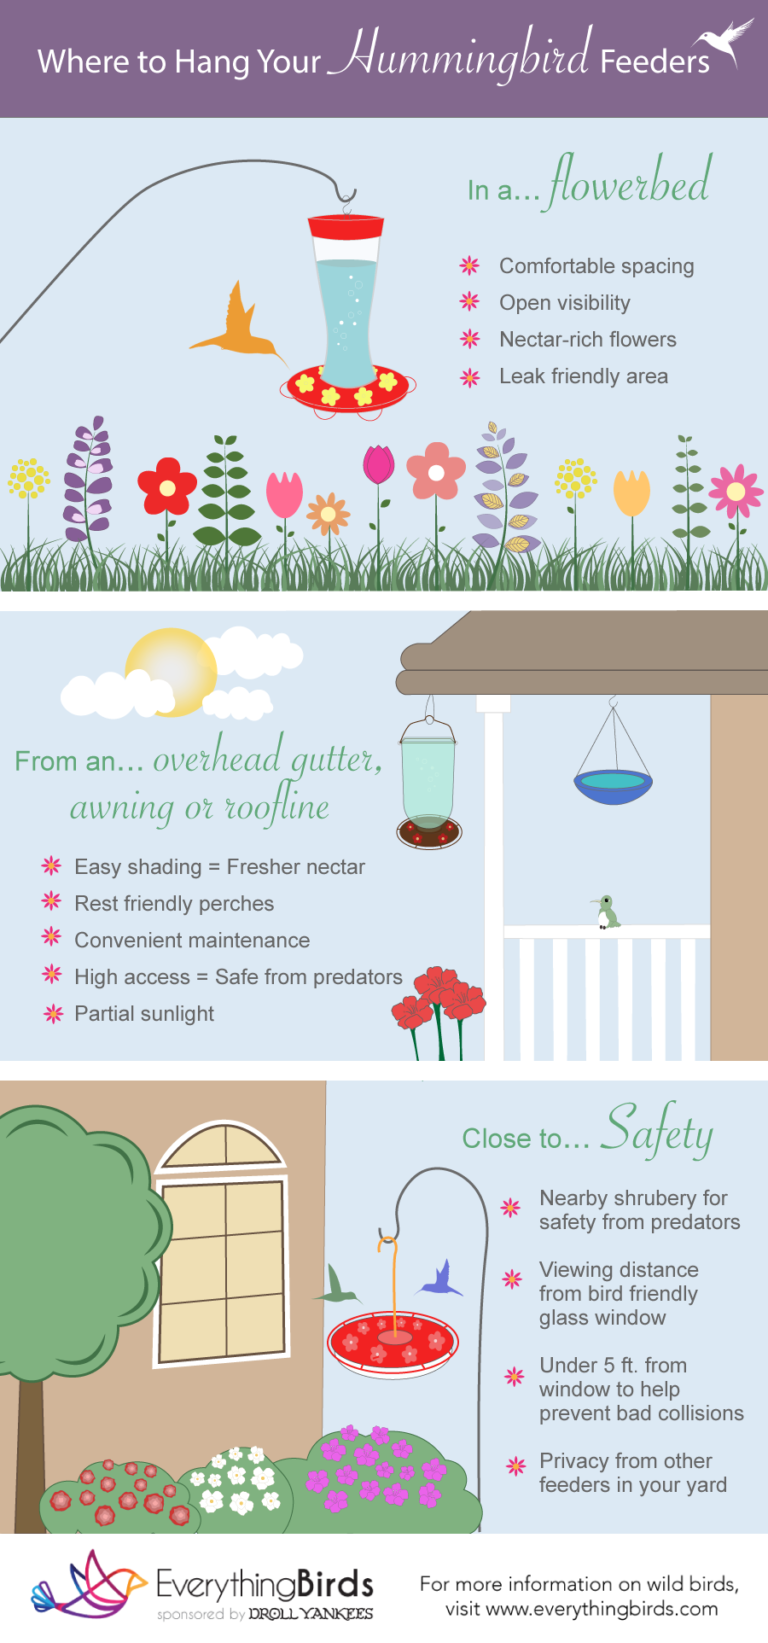 An infographic showing where to hang hummingbird feeders in your yard.